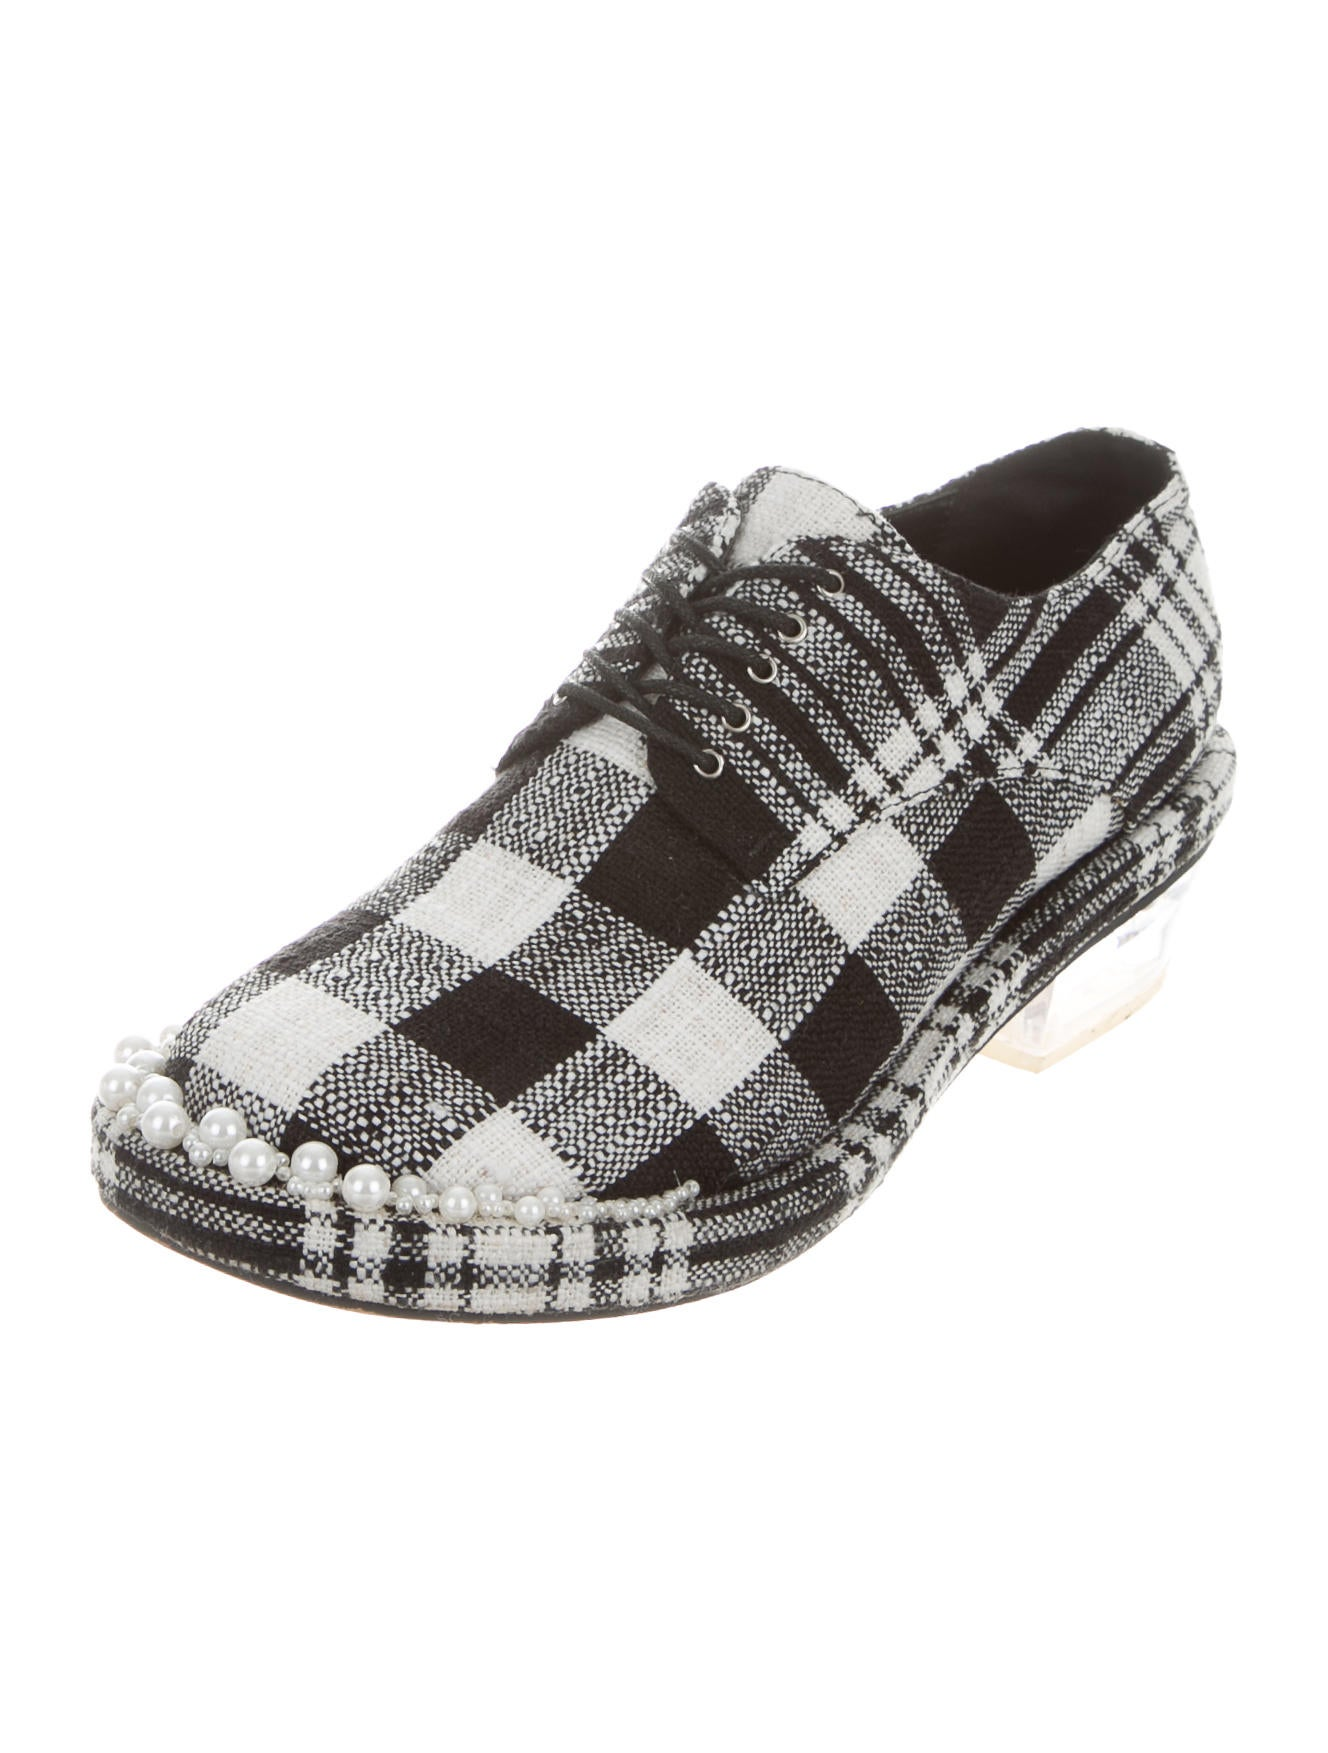 new for sale Simone Rocha Embellished Plaid Oxfords pay with visa for sale buy cheap cost cheap find great 3jzQGyIC2L